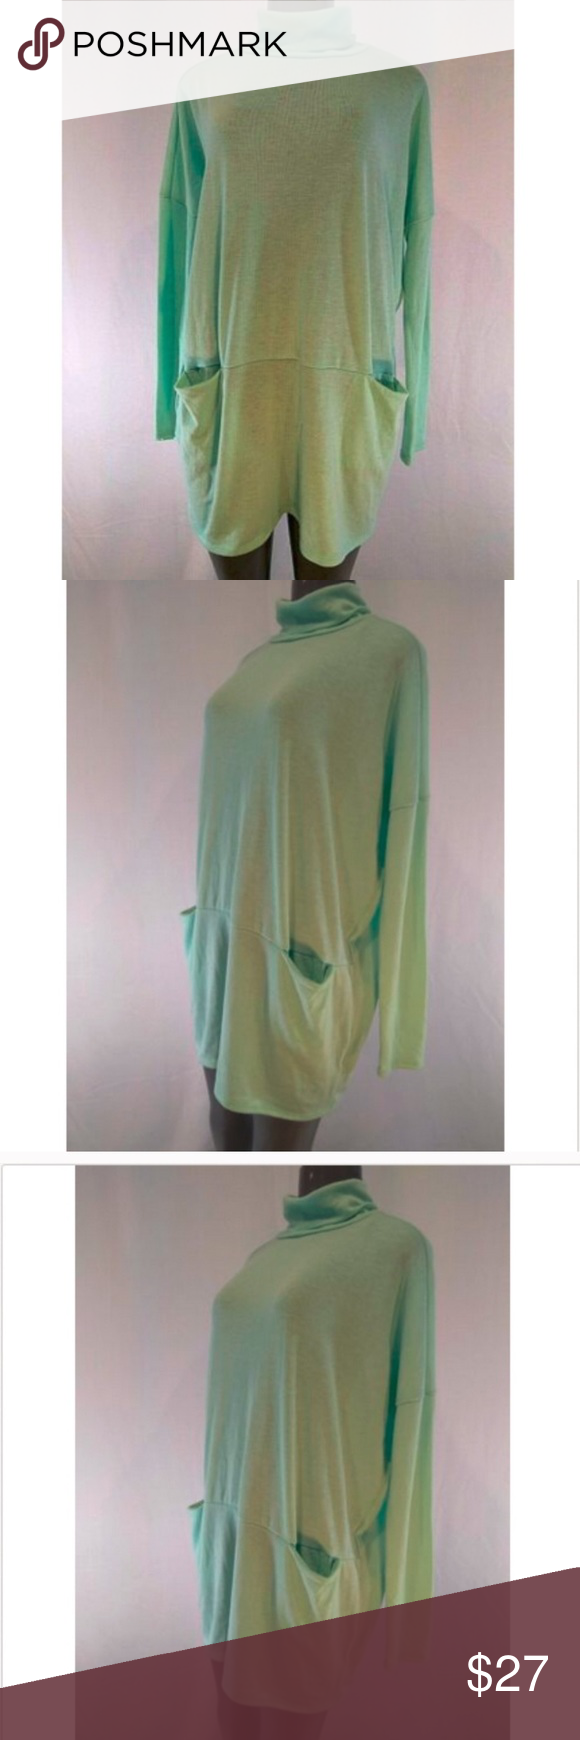 Nymphe Women's Turtleneck Green Sweater Large Nymphe Womens Turtleneck Sweater Large Green Oversized Pocket  Nymphe Womens Turtleneck Sweater Large Green Oversized Pockets NWT  Approx length 31 inches    Approx armpit to armpit 27 inches flat   T3  233130392259 08172019AB NYMPHE Sweaters Cowl & Turtlenecks